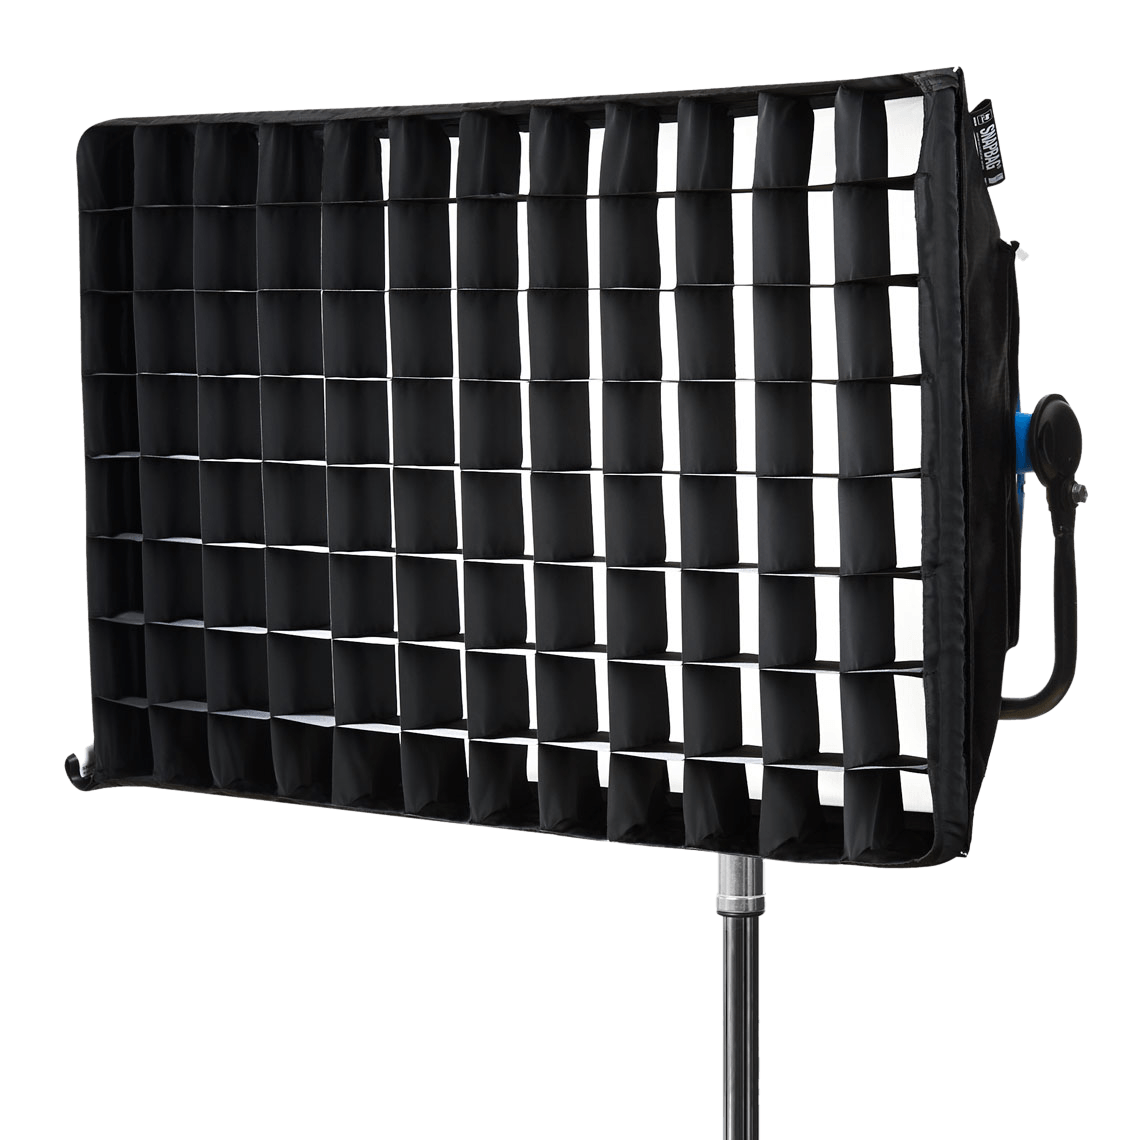 DoPchoice SkyPanel S60 SnapGrid 40° For Snapbag